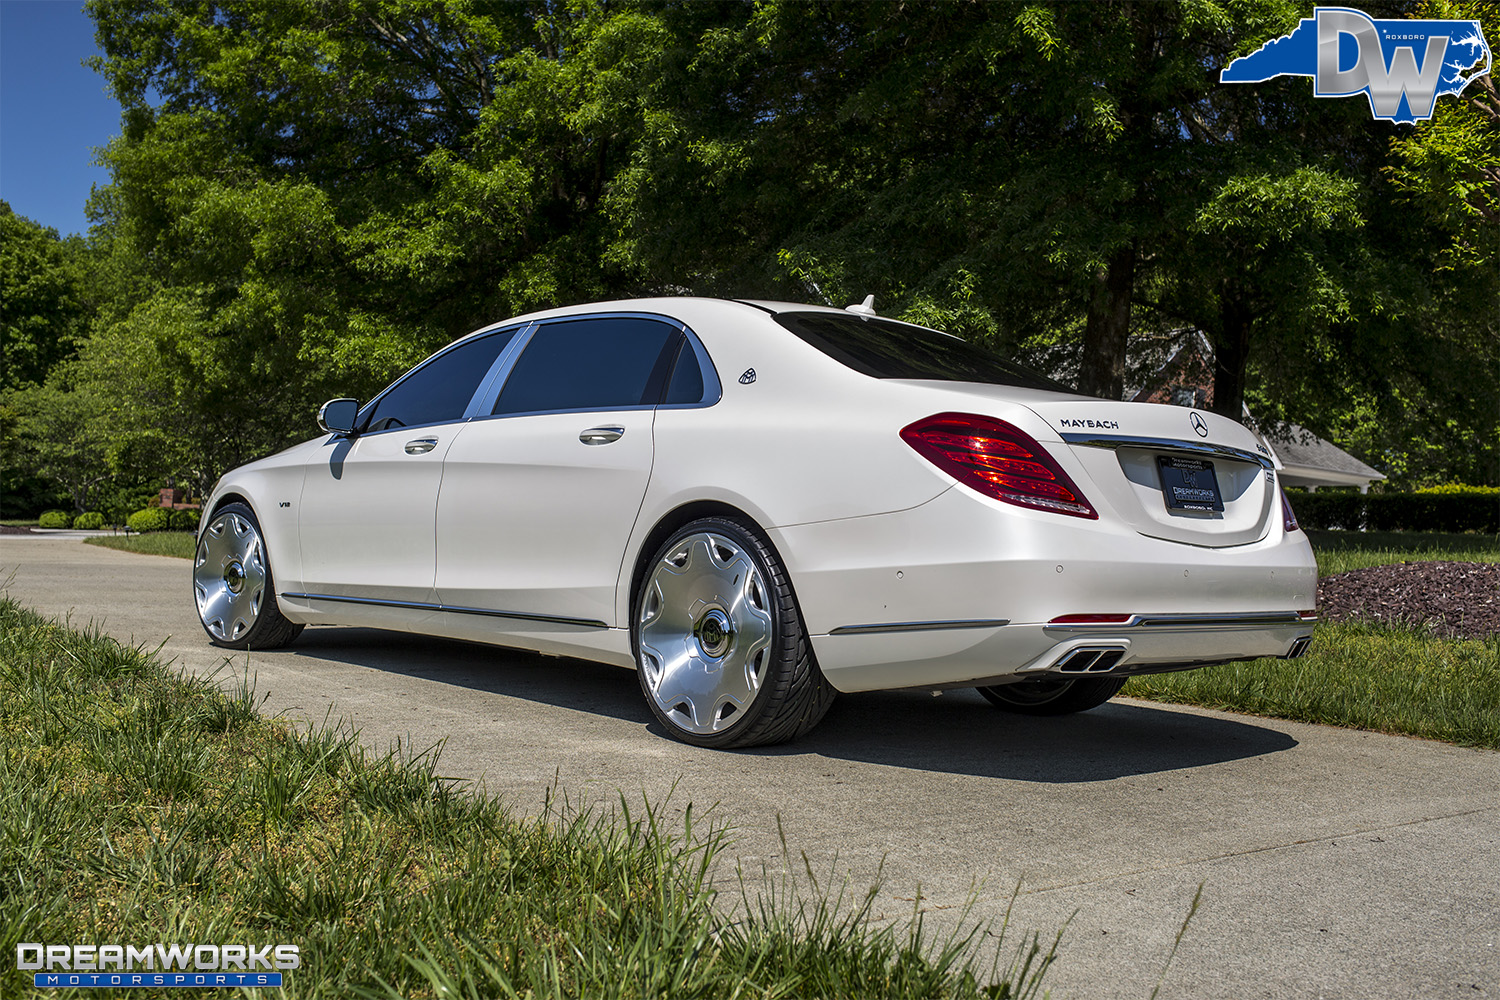 Maybach-S600-Chris-Wilcox-Dreamworks-Motorsports-1.jpg